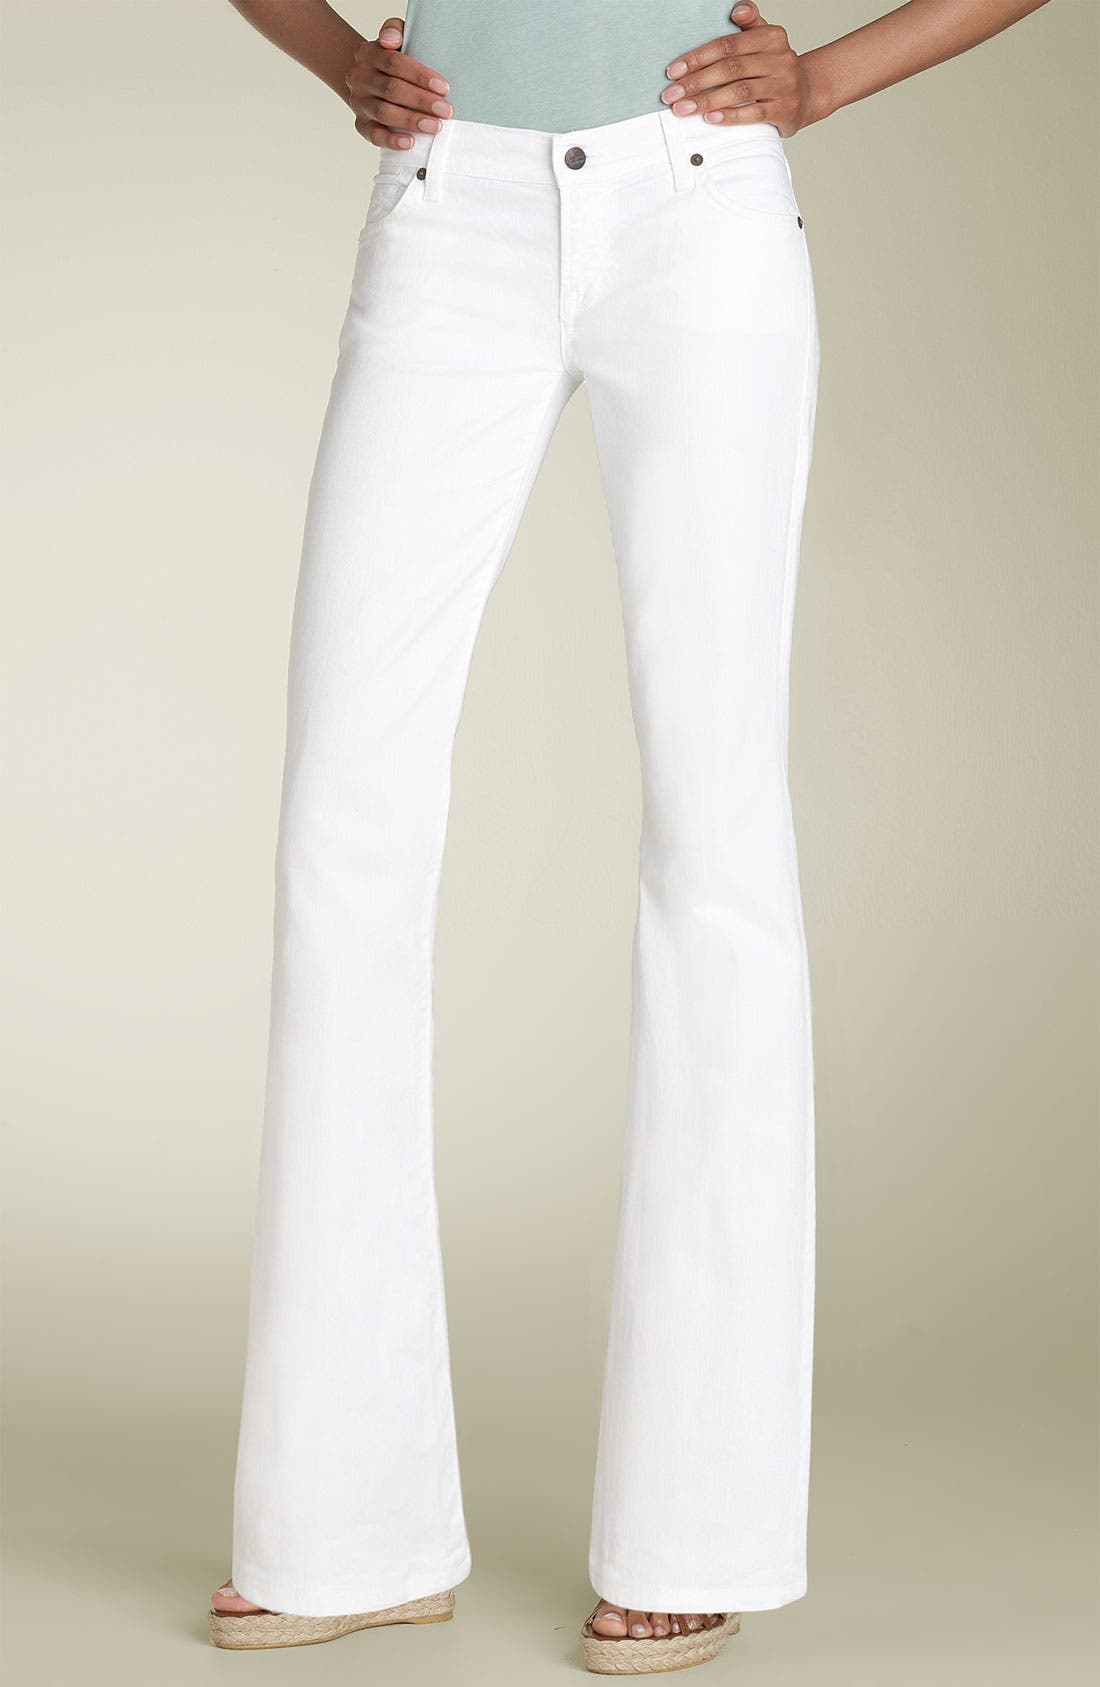 Main Image - Citizens of Humanity 'Dita' Bootcut Stretch Jeans (Santorini White) (Petite)